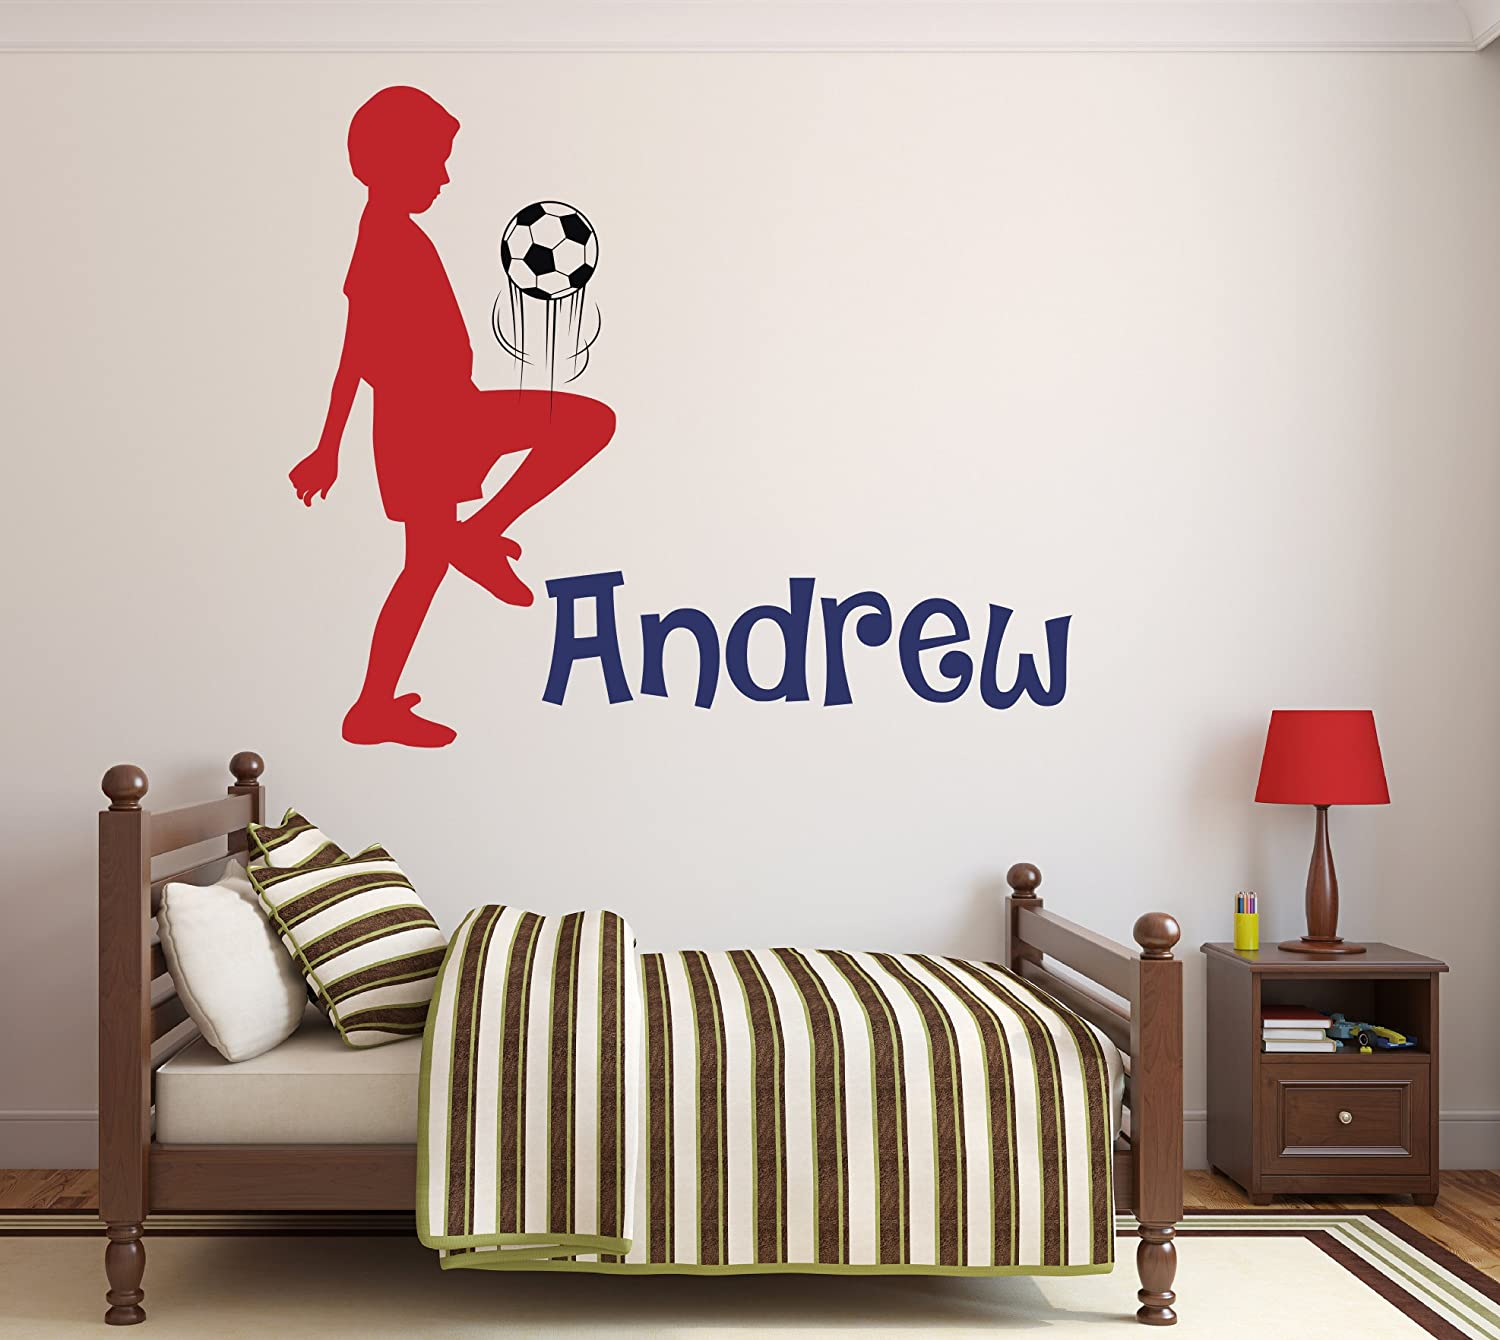 Children Decal Bedroom Ice Skater Personalised name Playroom Vinyl Wall Art Sticker Wall Decor Home Sports, Kids Nursery